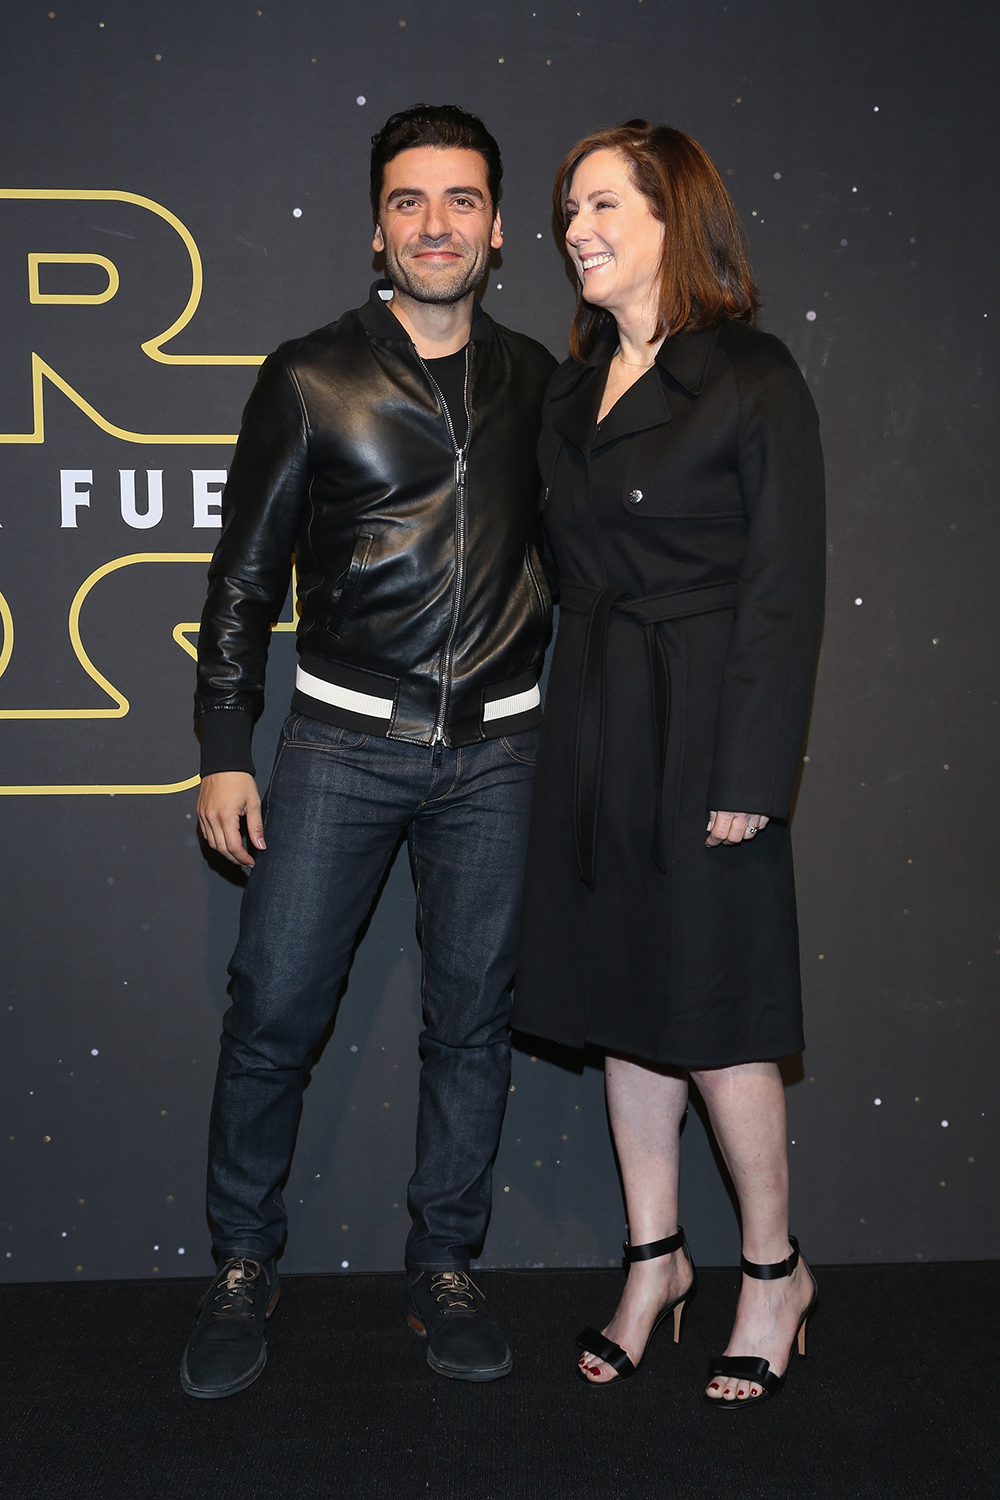 """MEXICO CITY, MEXICO - DECEMBER 08: Actor Oscar Isaac and film producer Kathleen Kennedy attend the """"Star Wars: The Force Awakens"""" Mexico City premiere fan event at Cinemex Antara Polanco on December 8, 2015 in Mexico City, Mexico.   Victor Chavez/Getty Images for Walt Disney Studios'/AFP"""